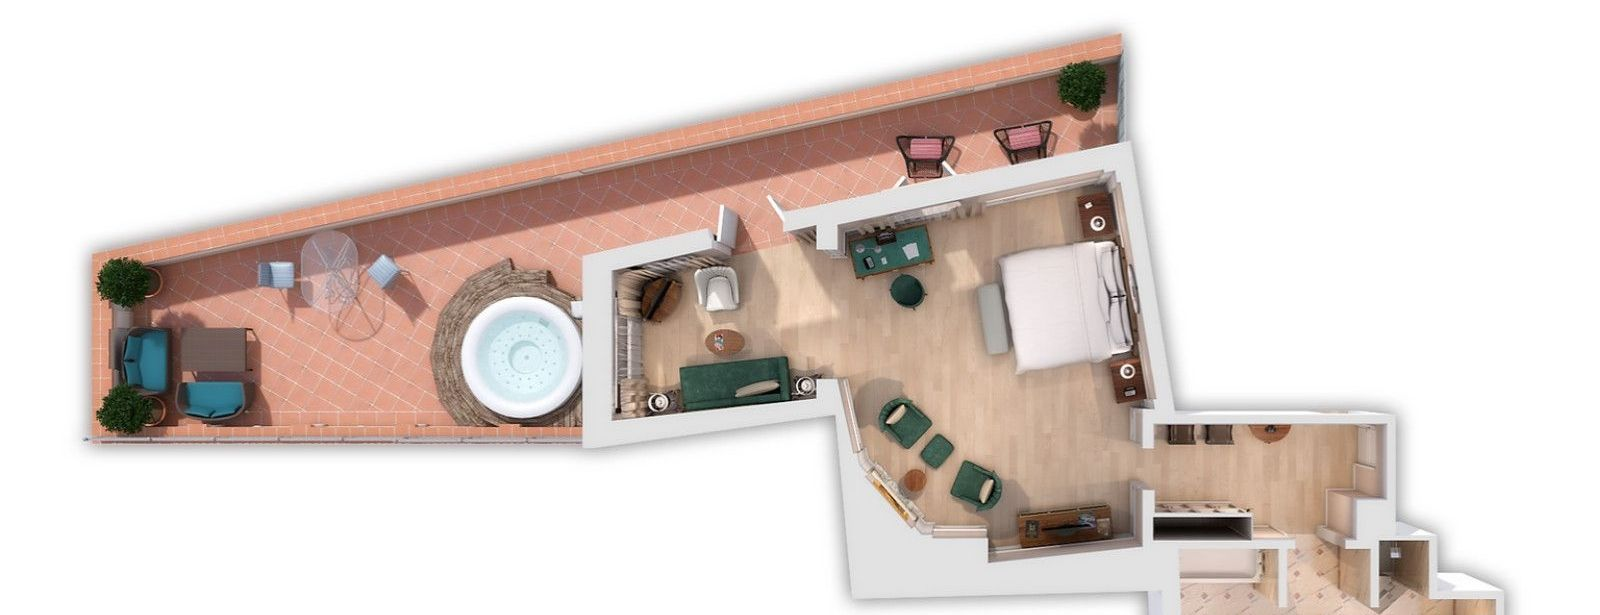 Belvedere Suite floor plan